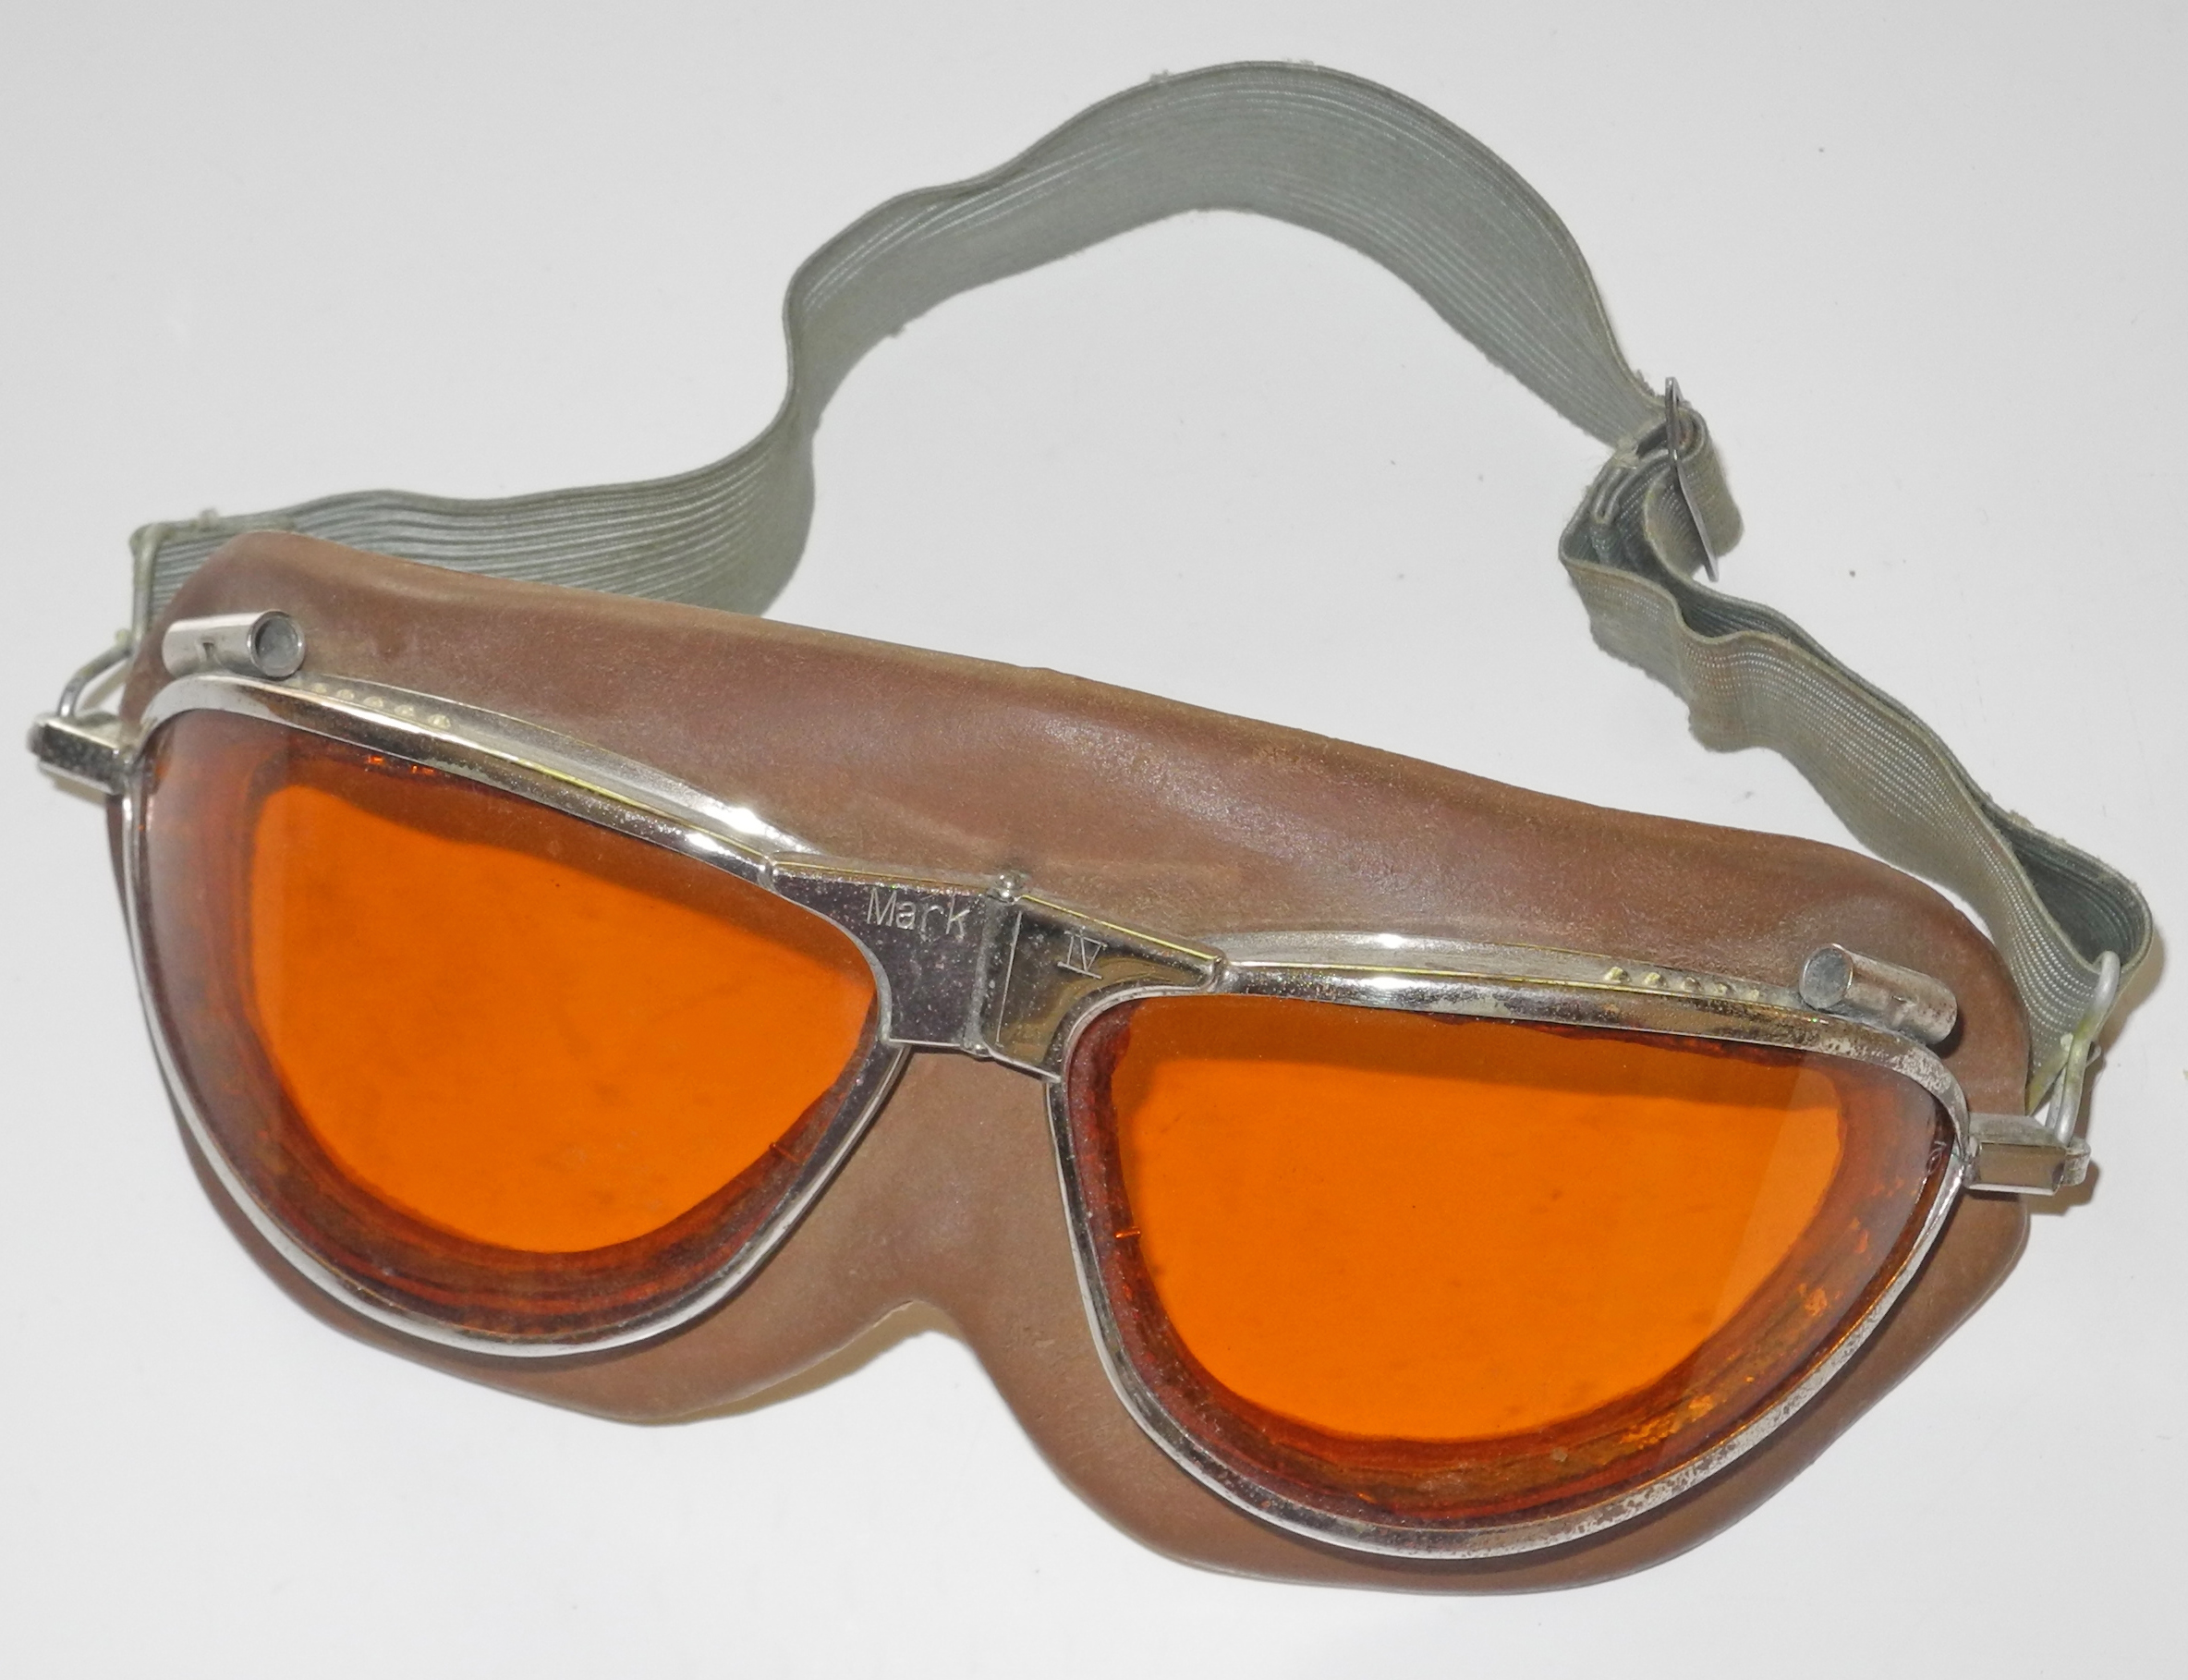 US Navy Mark IV flying goggles